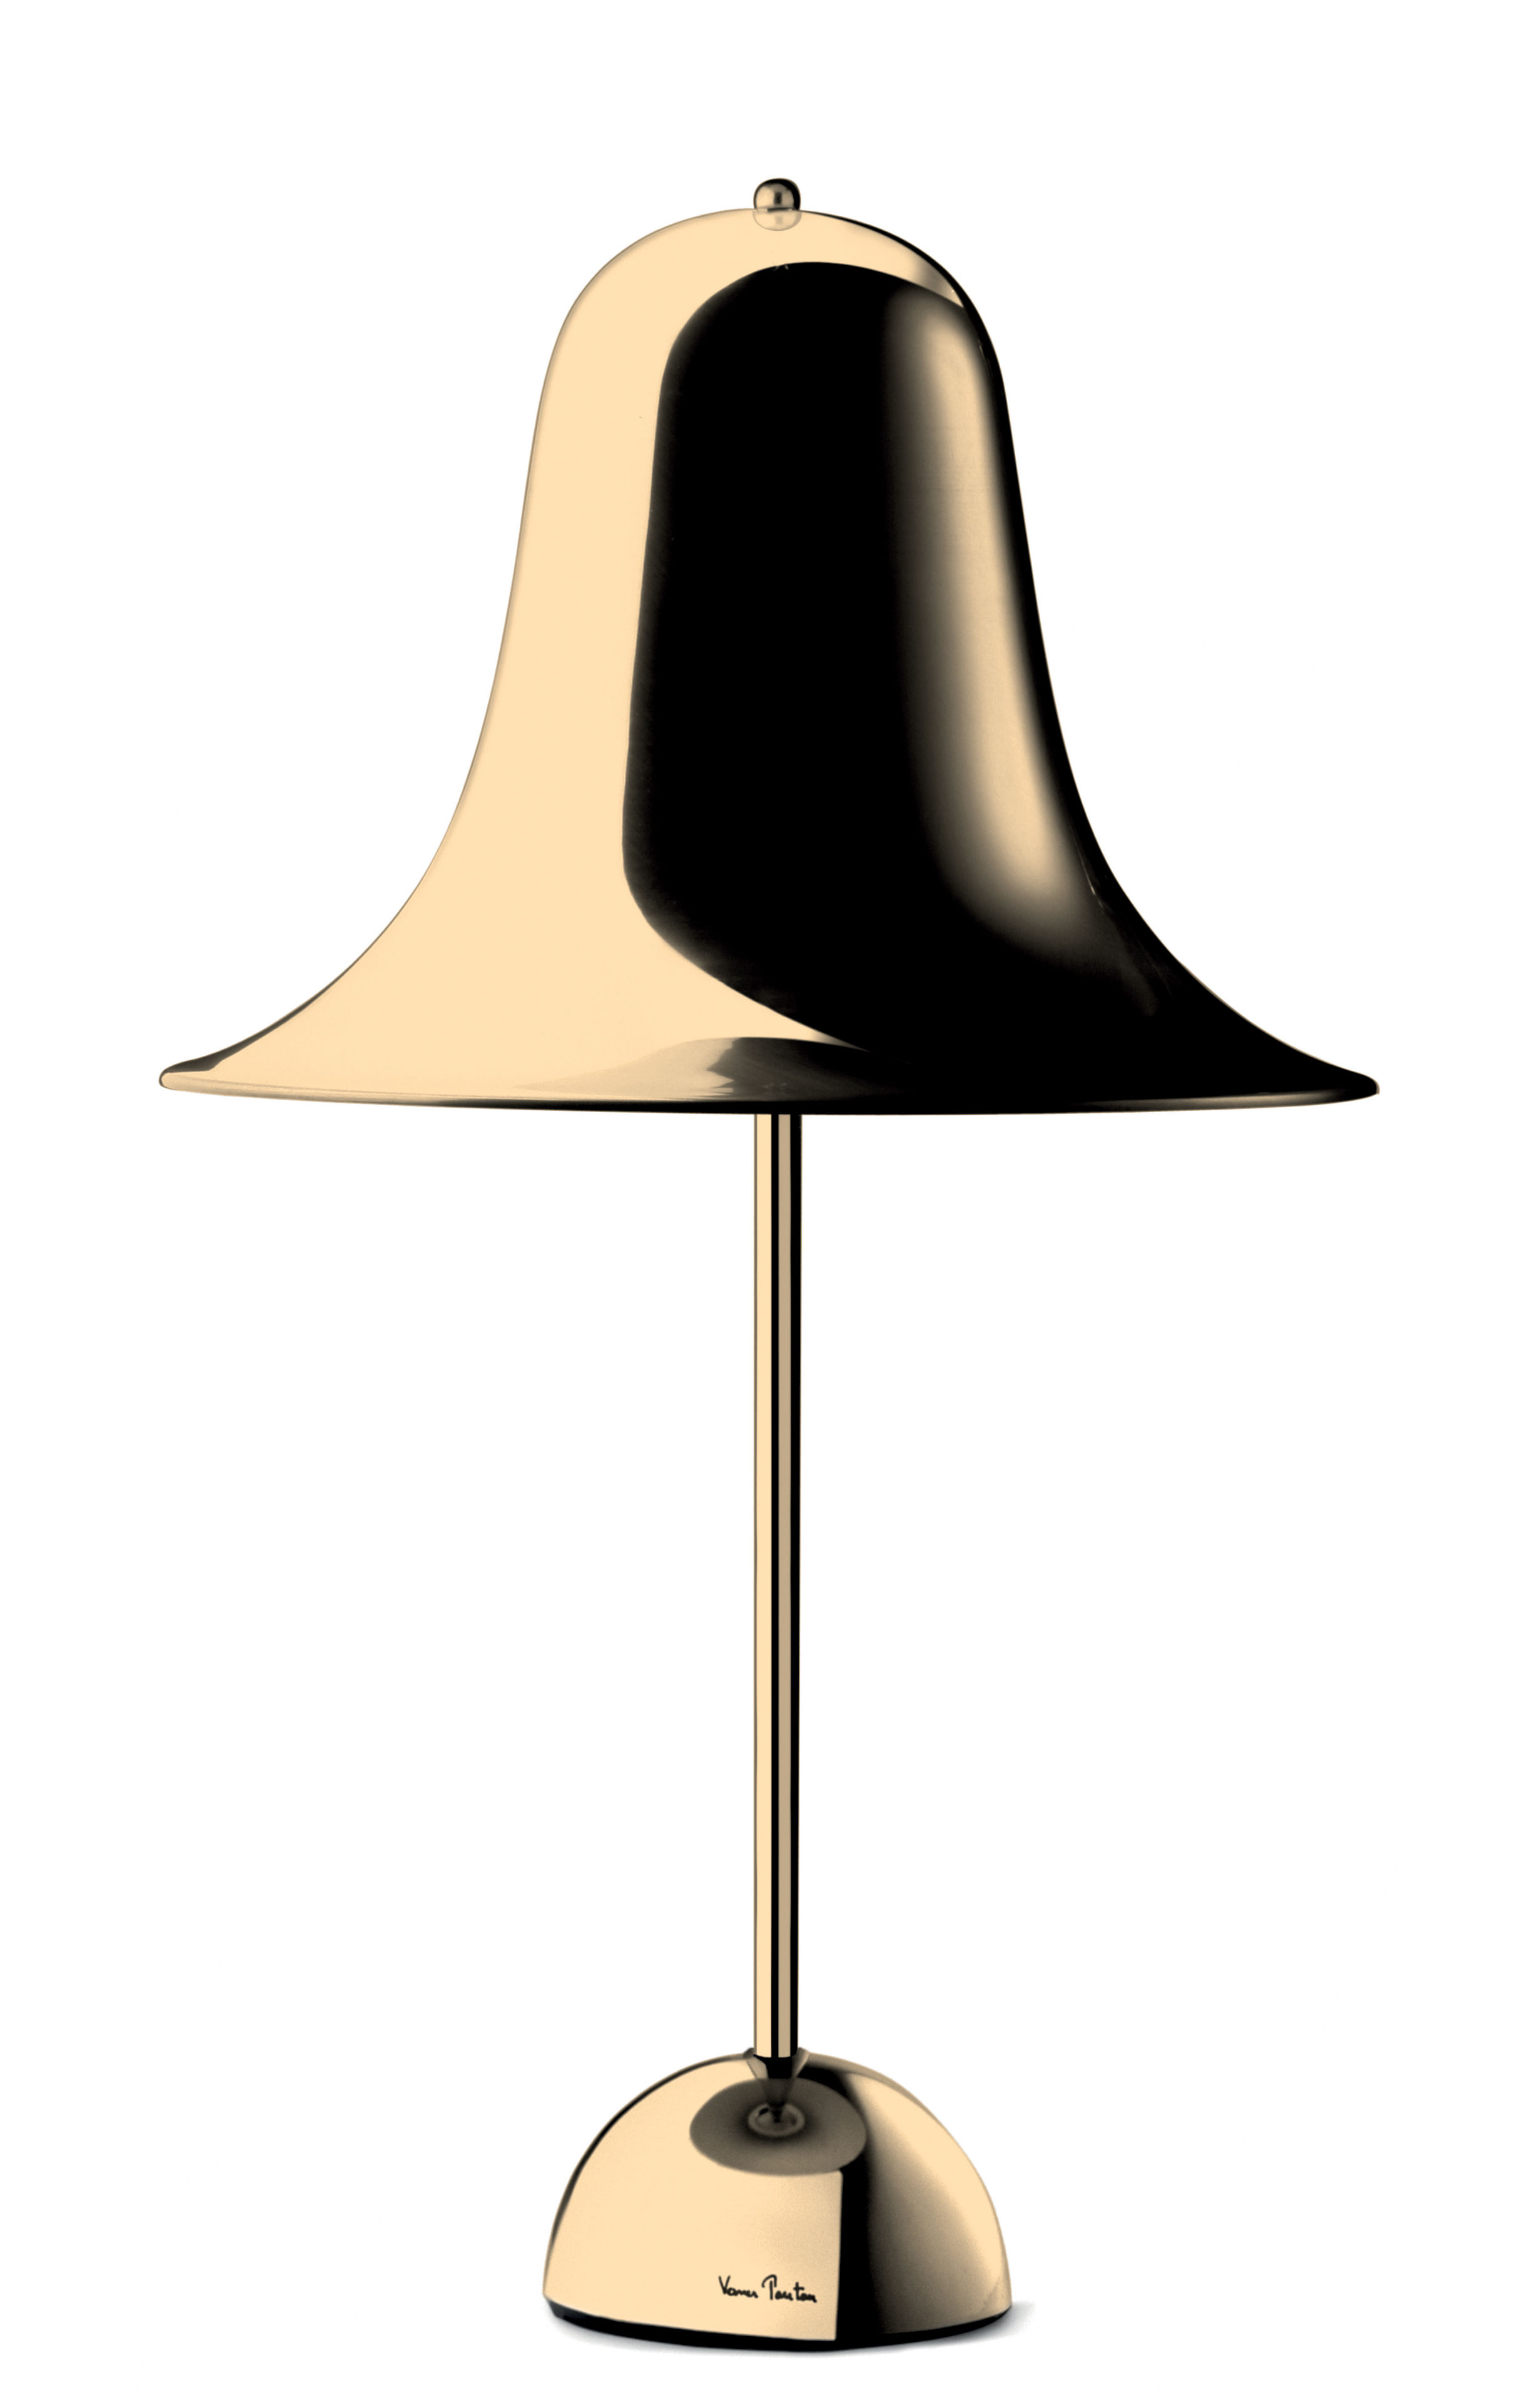 Lighting - Table Lamps - Pantop Small Ø 30 cm Table lamp - / Verner Panton (1980) by Verpan - Polished brass - Polished brass-plated metal